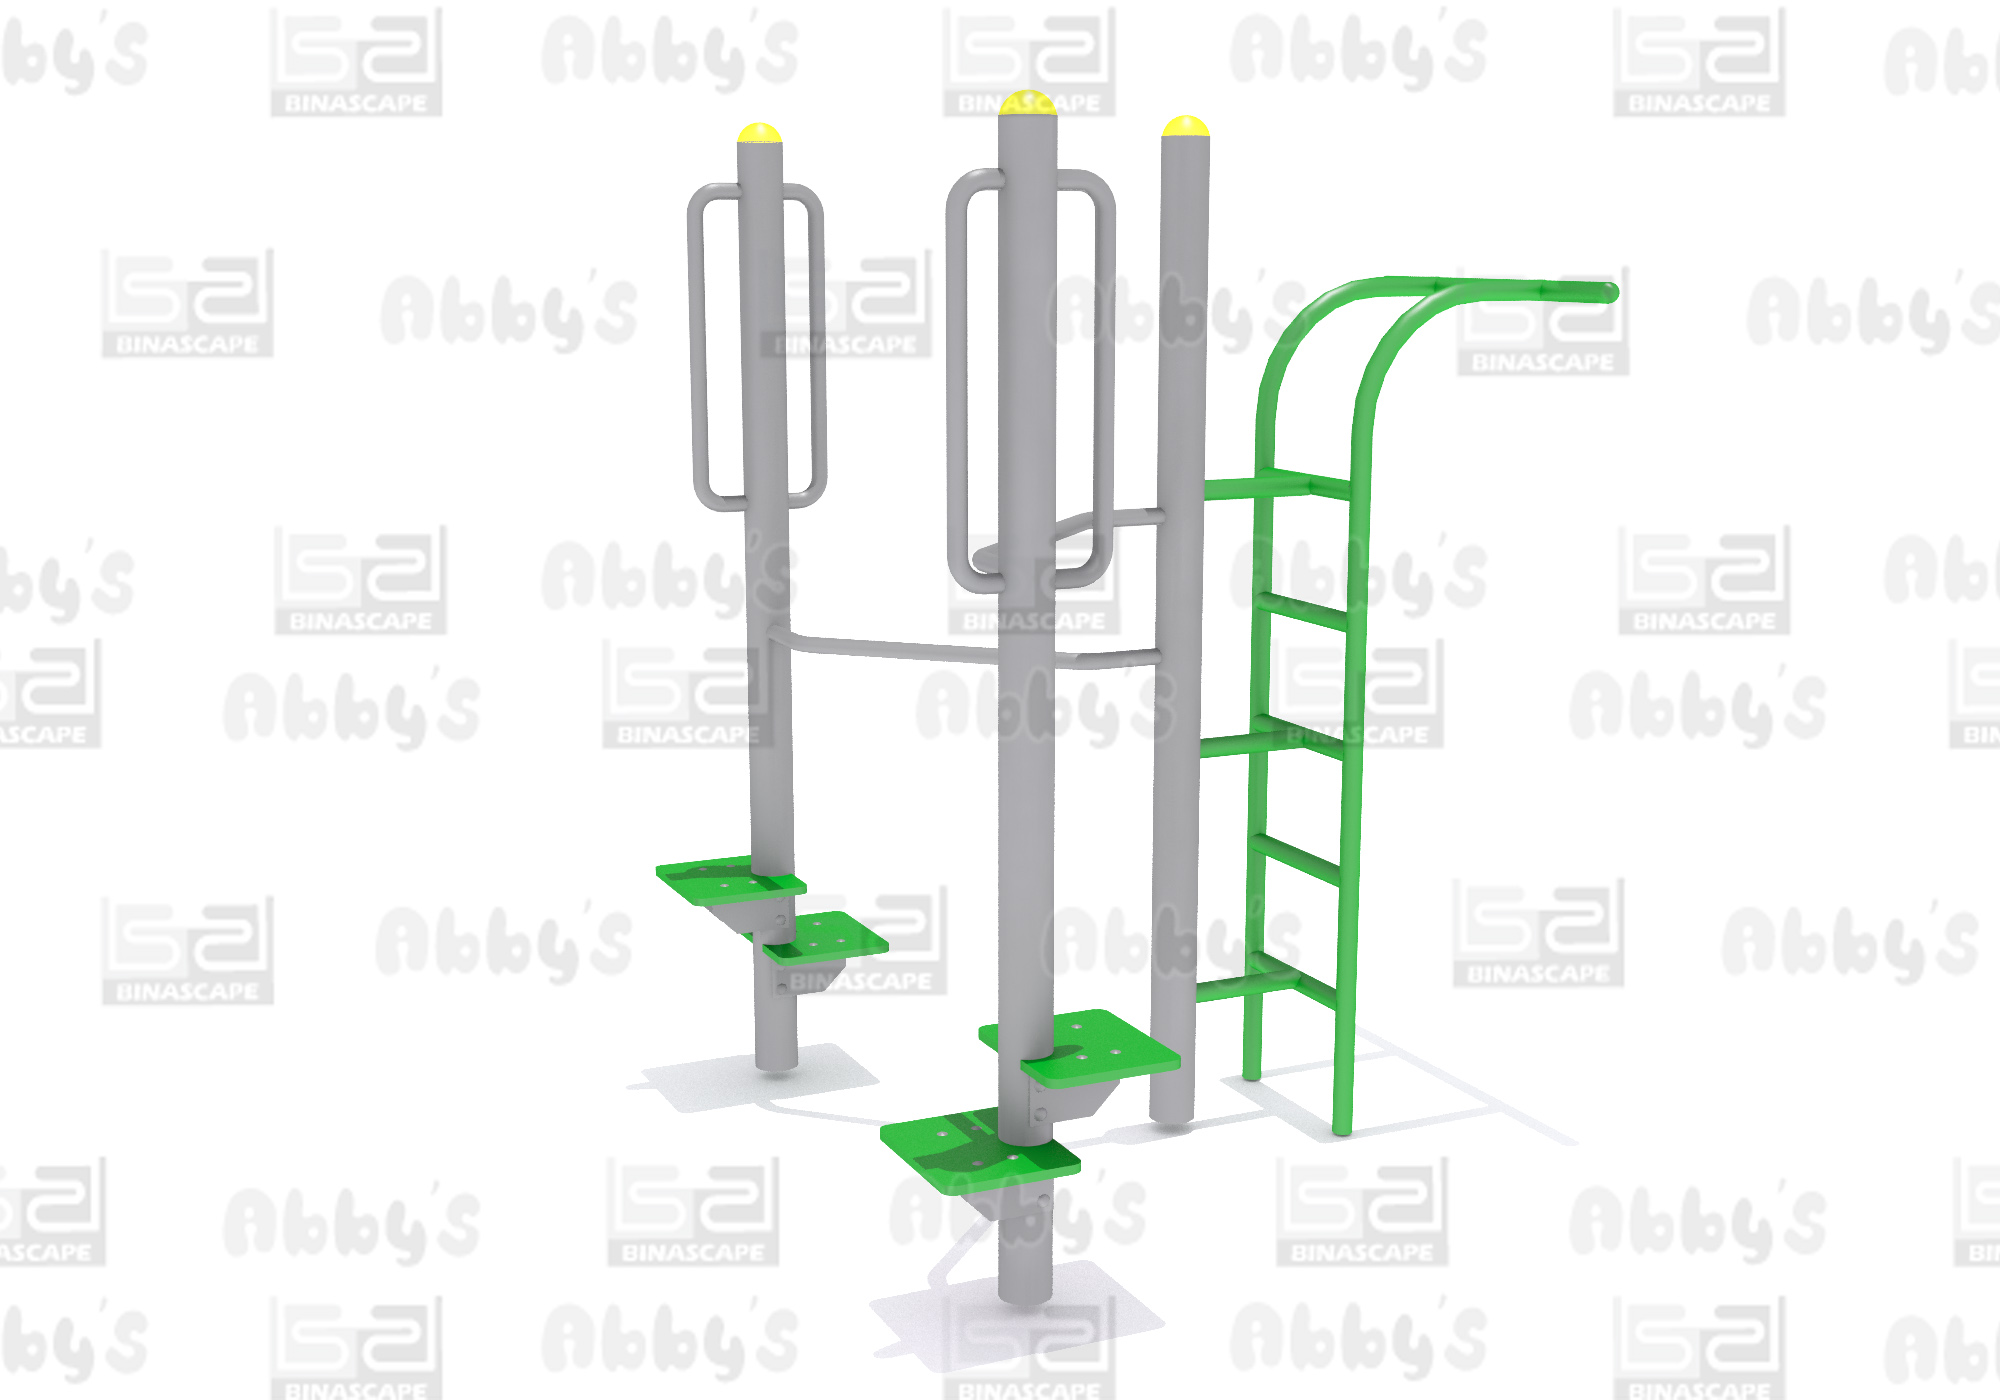 bS 016FC - MULTI FIT TRAINER 01